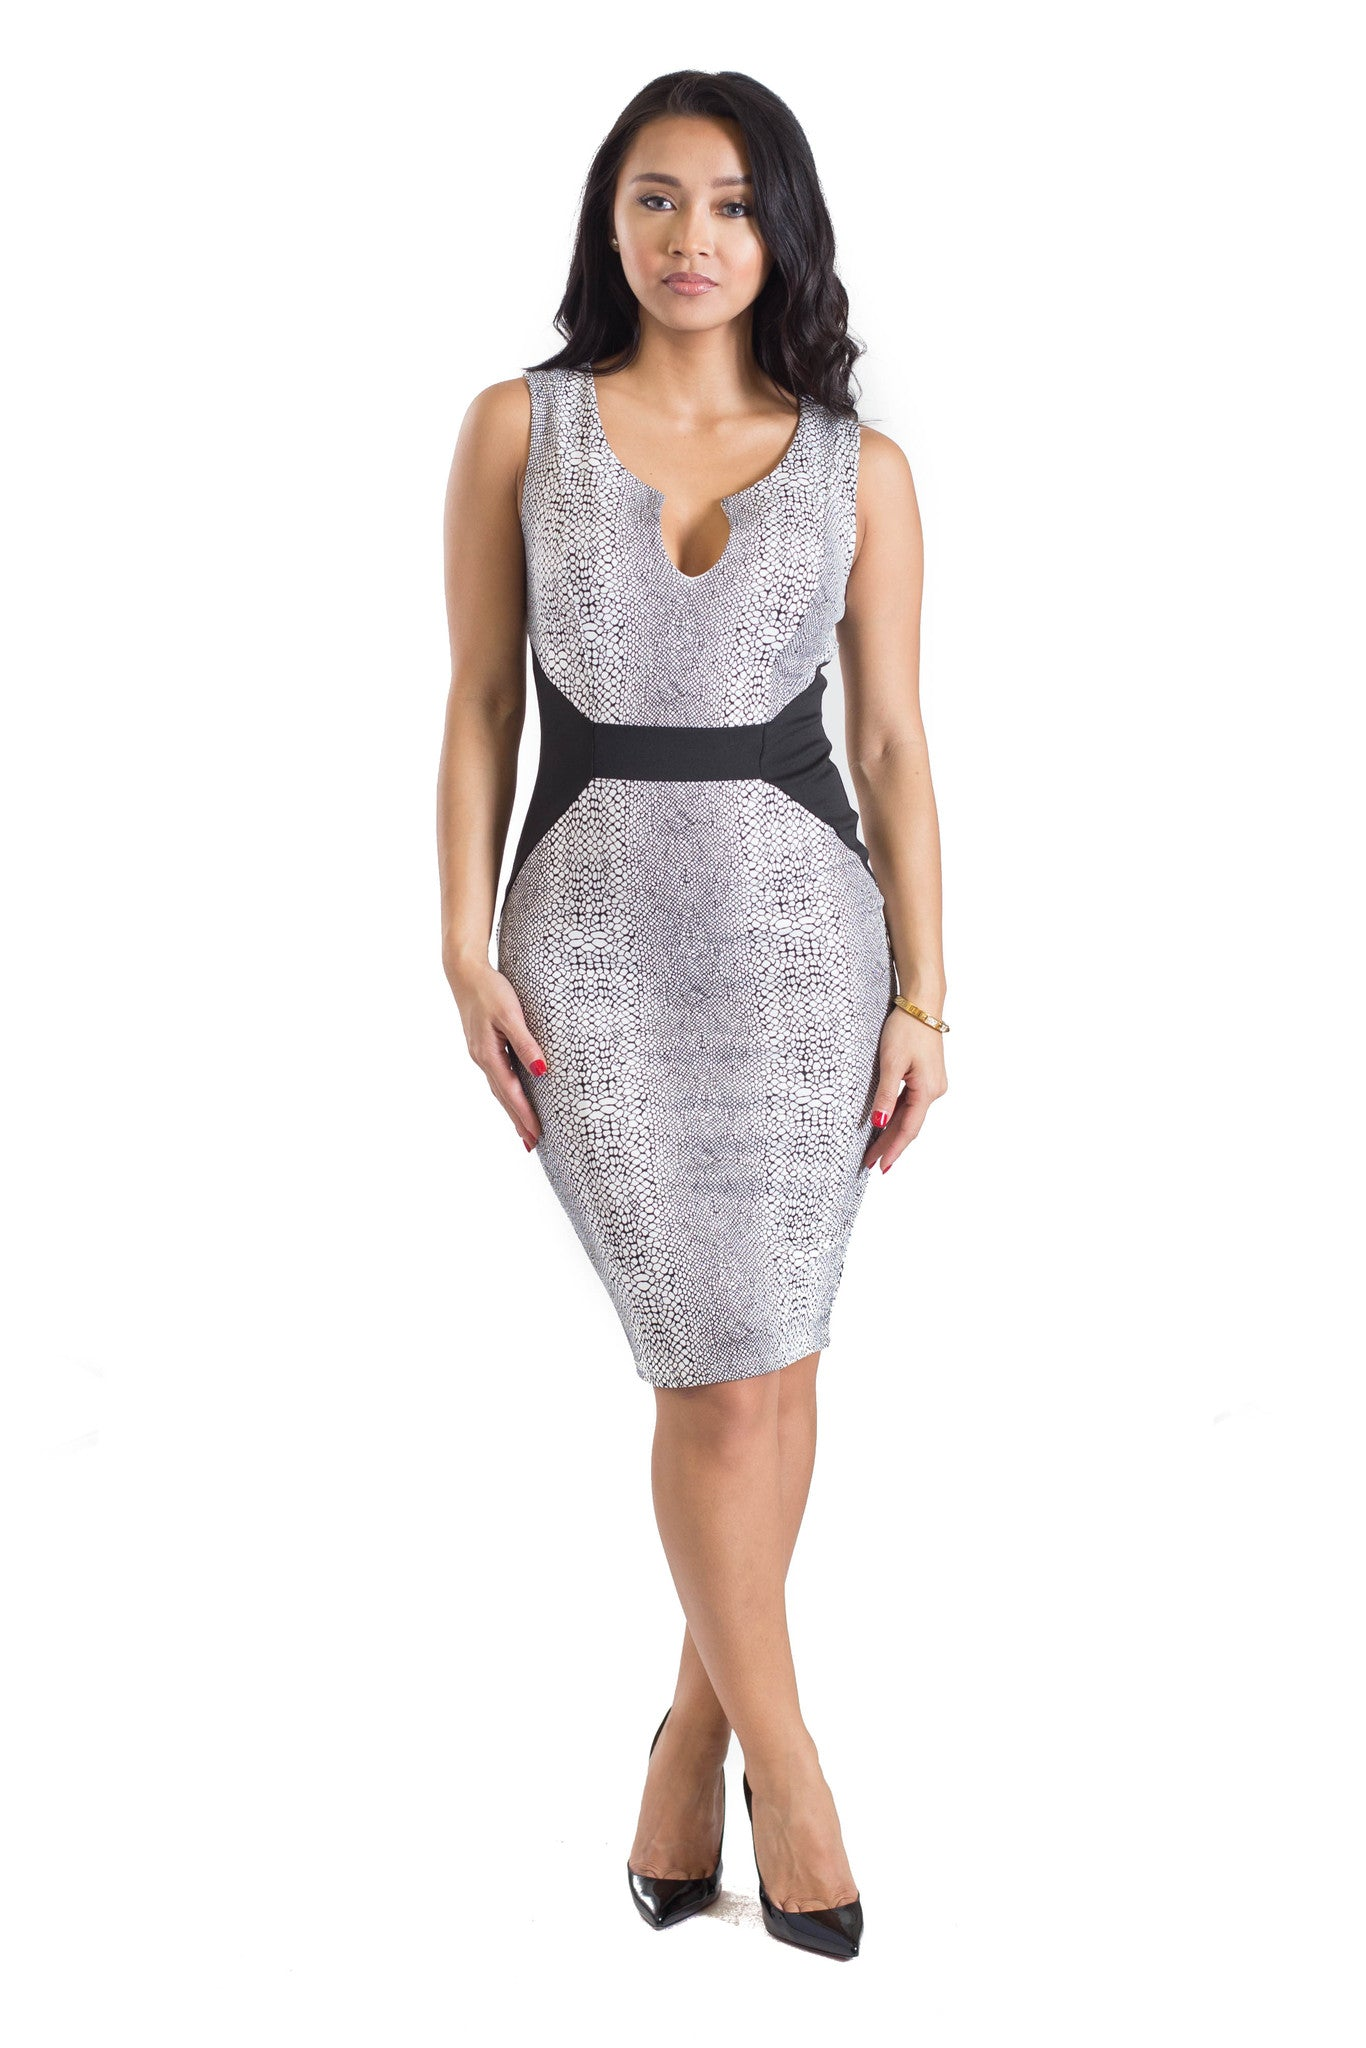 MC Devine Faux Snake Skin Dress